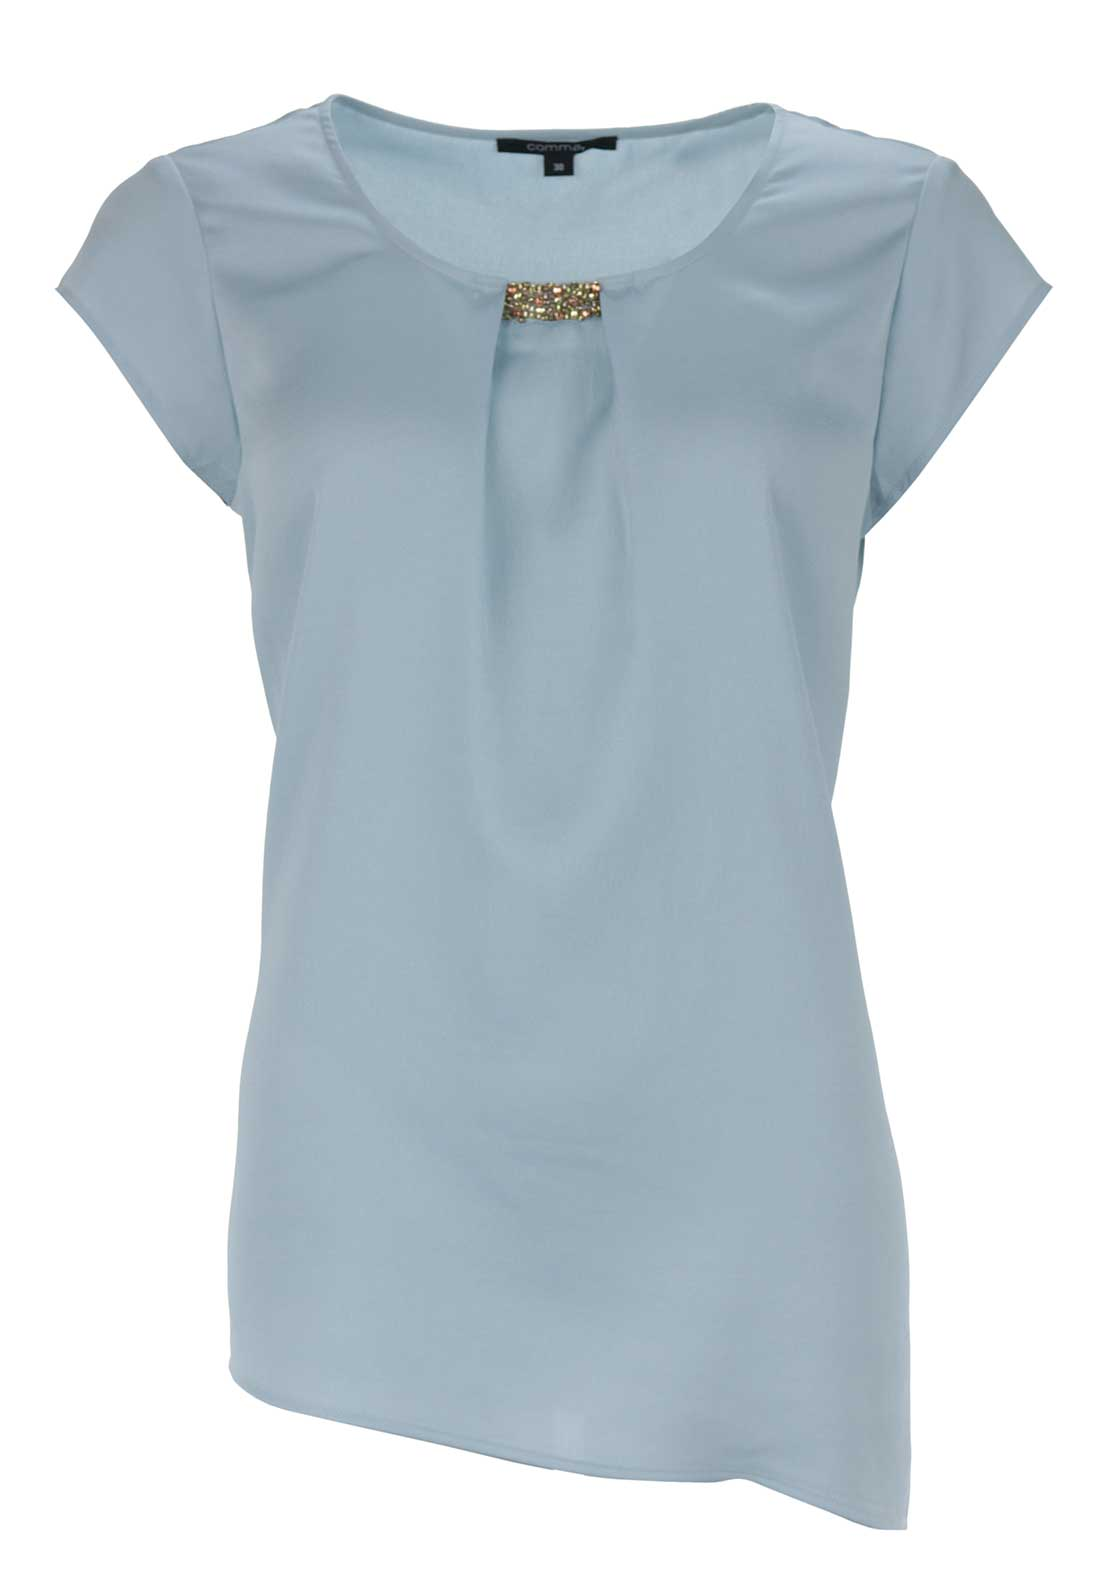 Comma Embellished Trim Cap Sleeve Top, Pale Blue